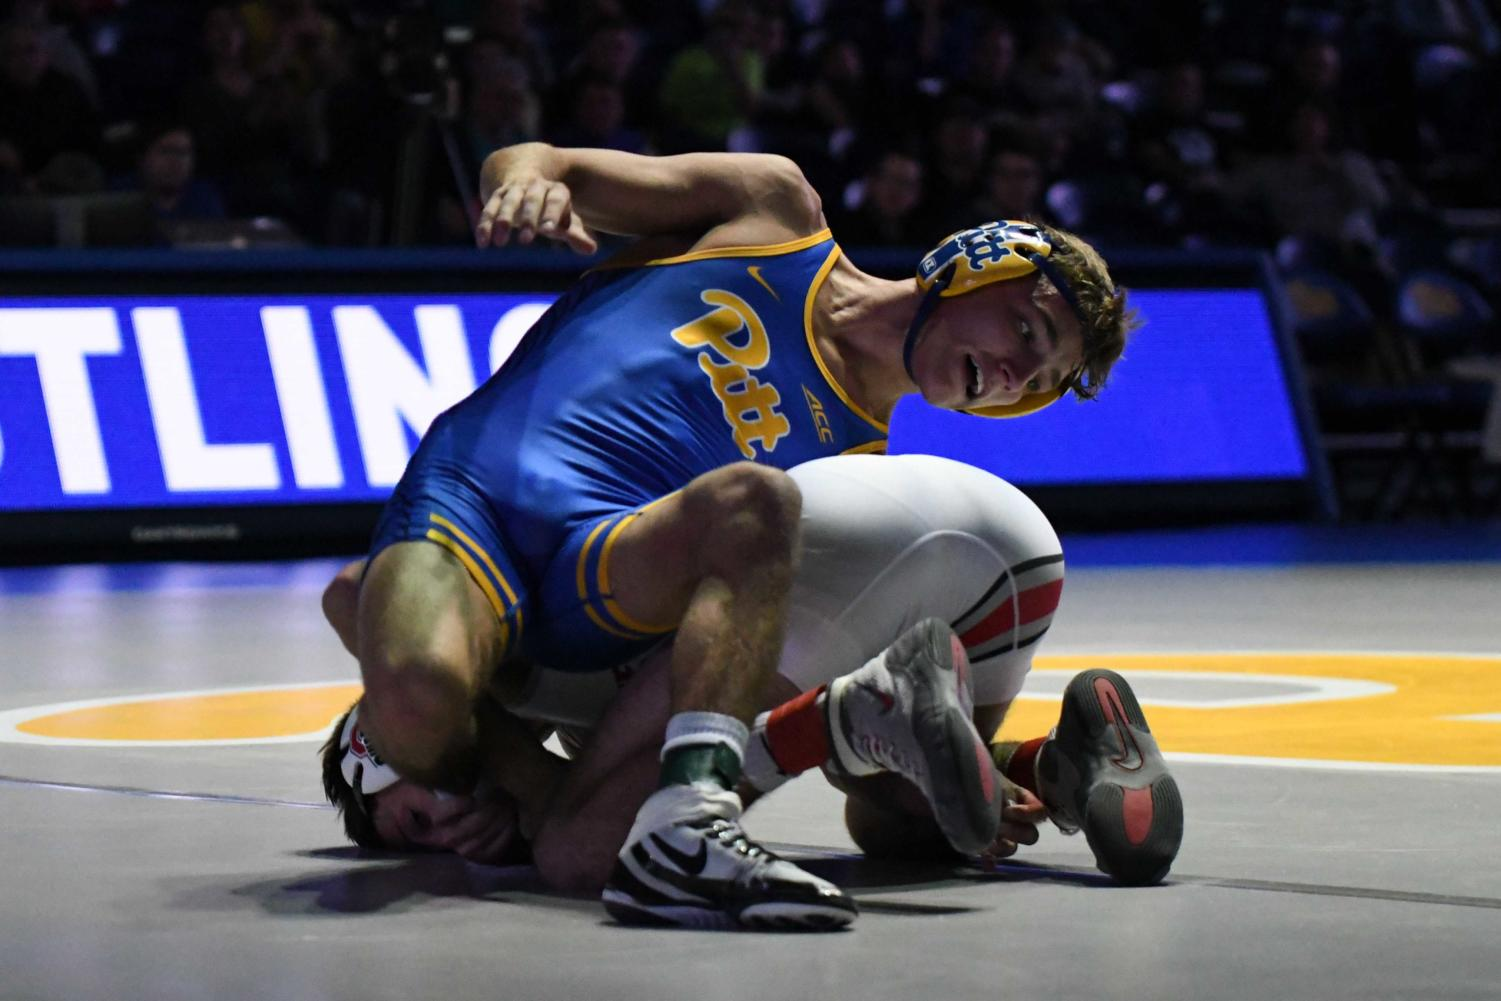 Micky Phillippi recorded one of Pitt's four individual wins during Friday's match against Ohio State.